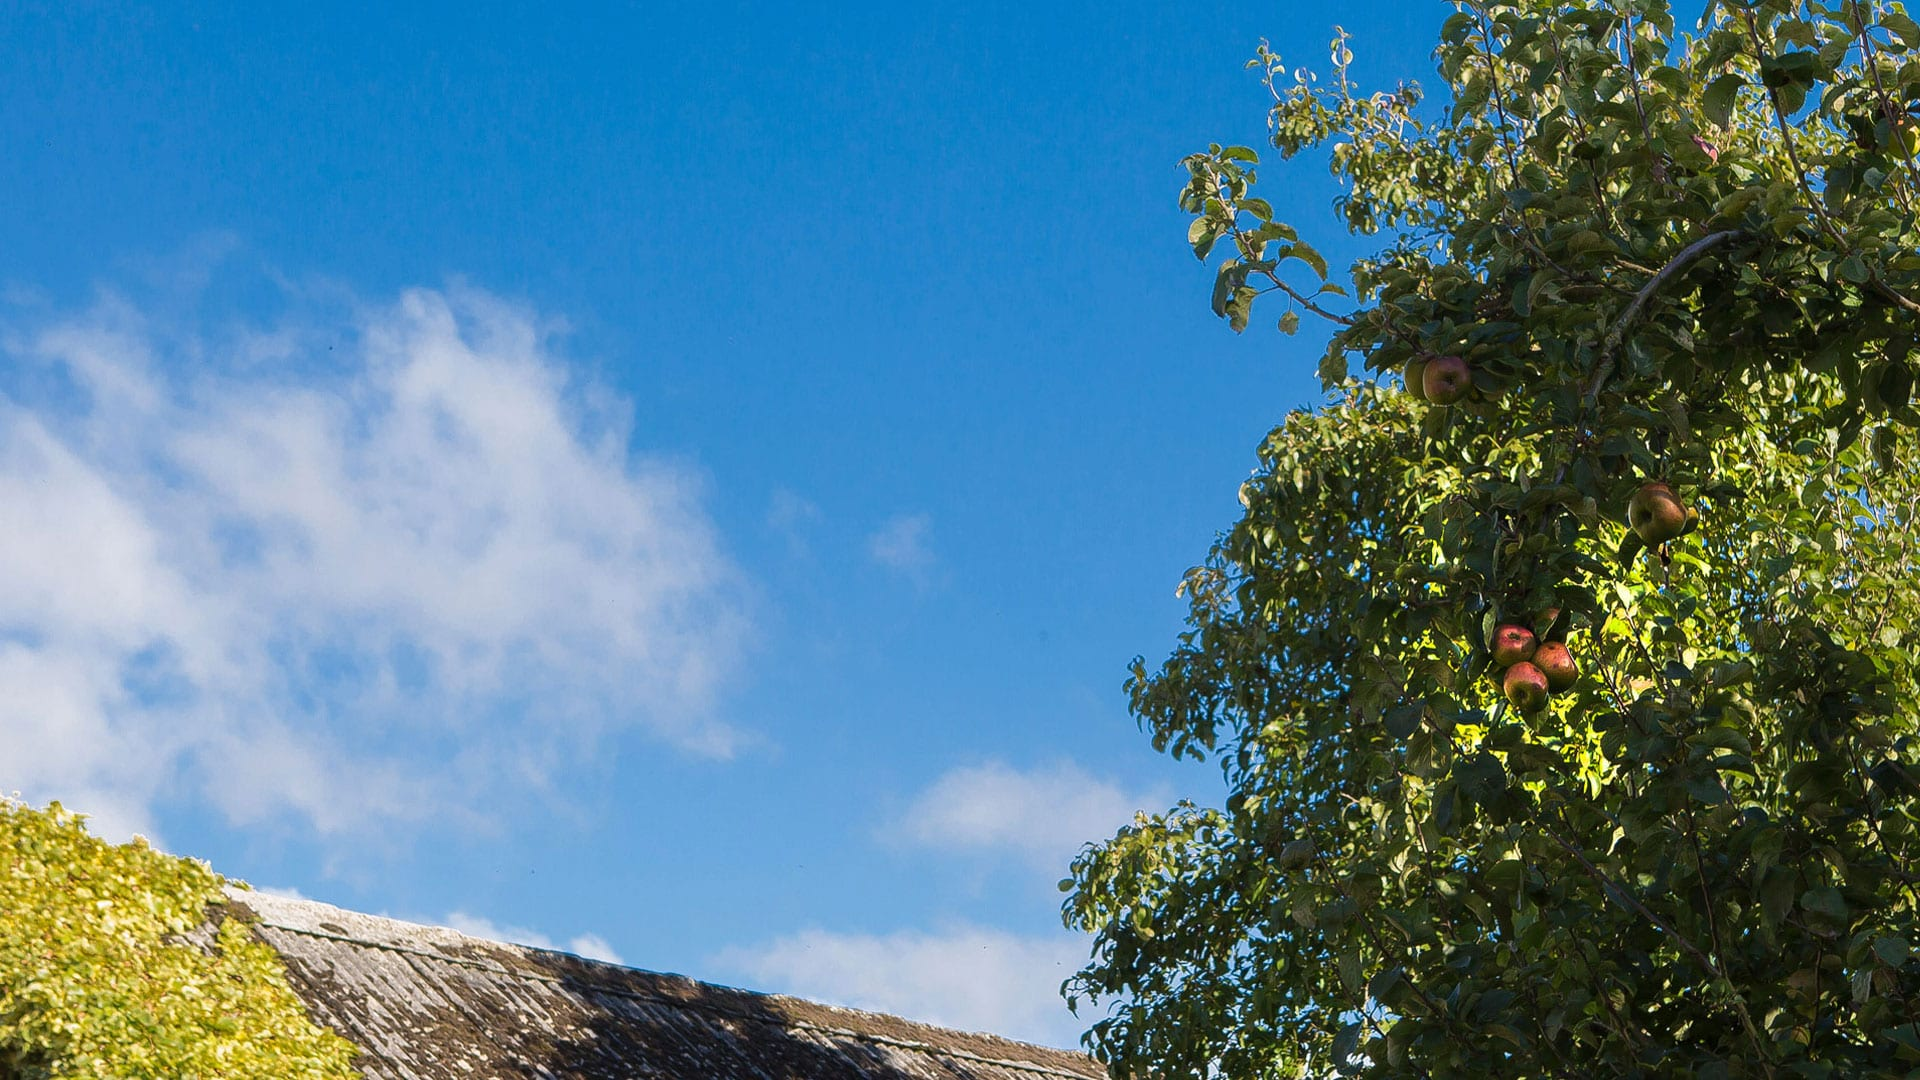 Blue Sky Apple Tree Orchard Nature Outdoors Holiday-Homes-Ireland-Meath-Dunshaughlin-Self-Catering